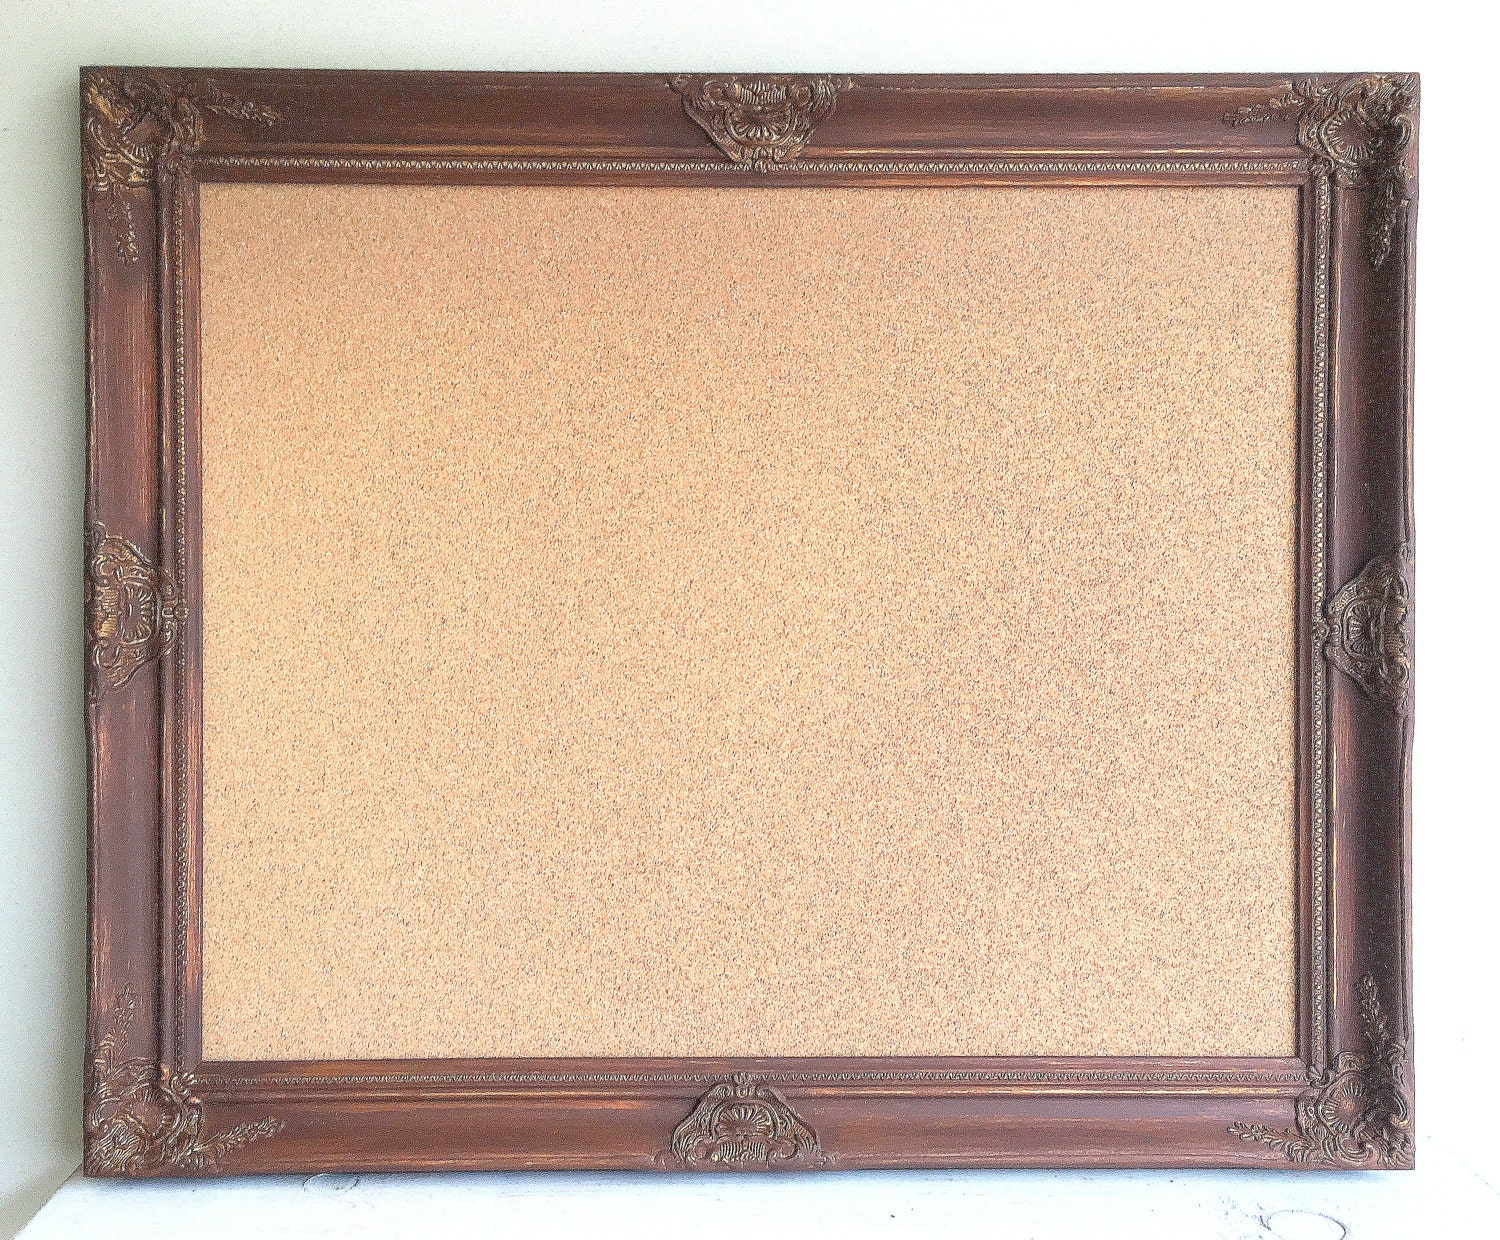 Espresso Brown CORK BOARD Decorative Corkboard Framed Cork